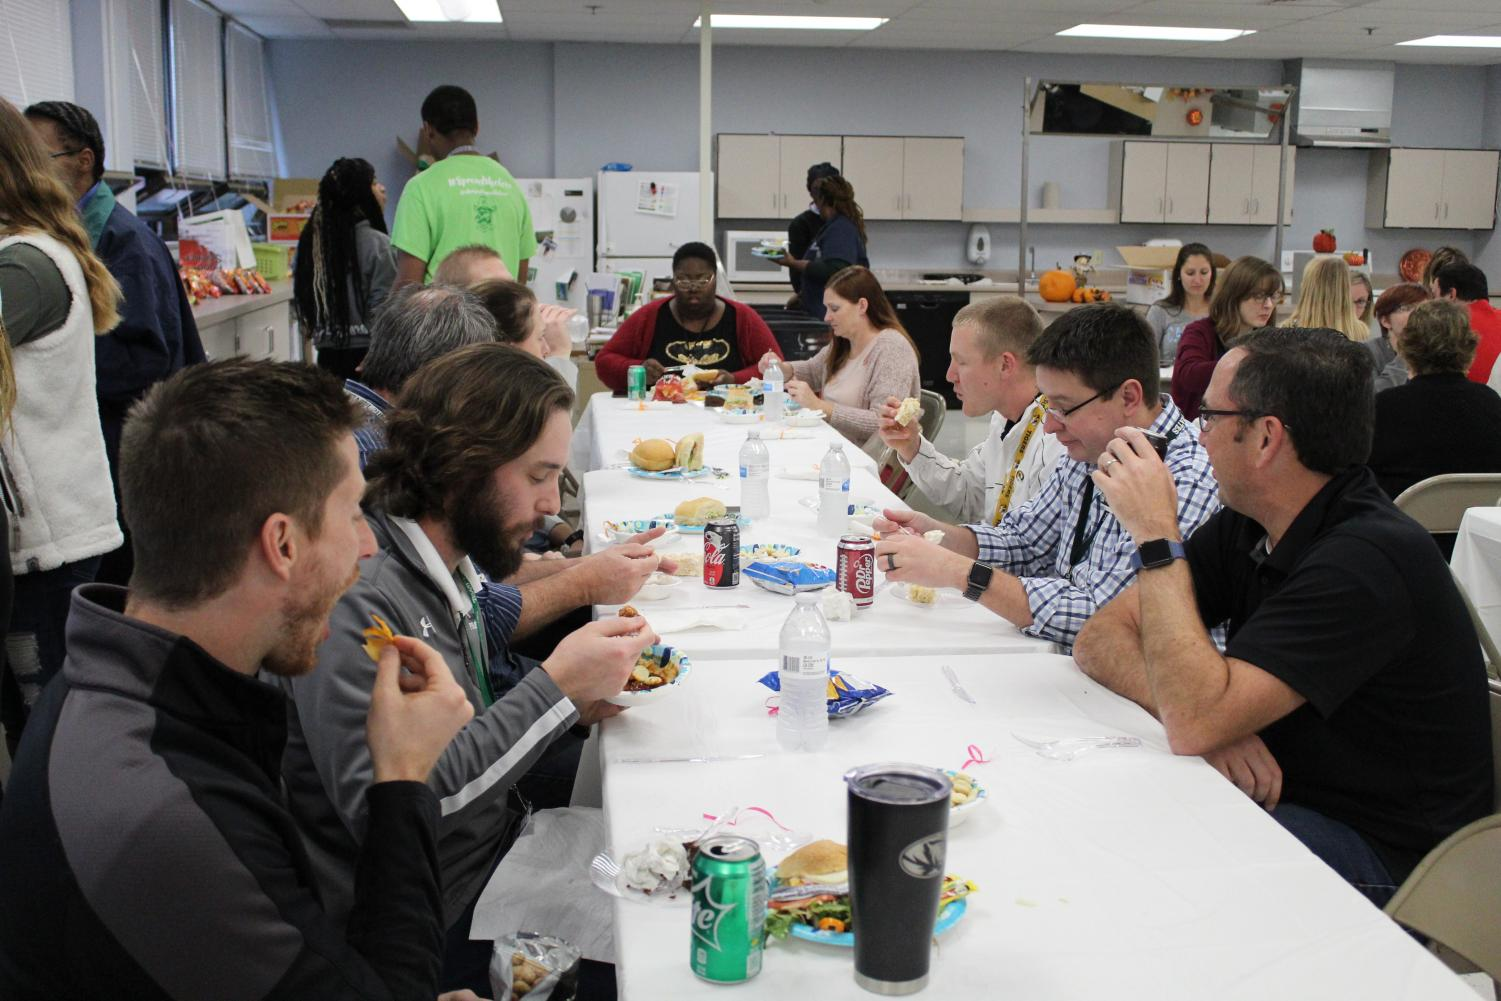 Sampling the creations of STUCO and Culinary Arts, teachers during 2nd lunch get a break from the norm thanks to students' efforts.